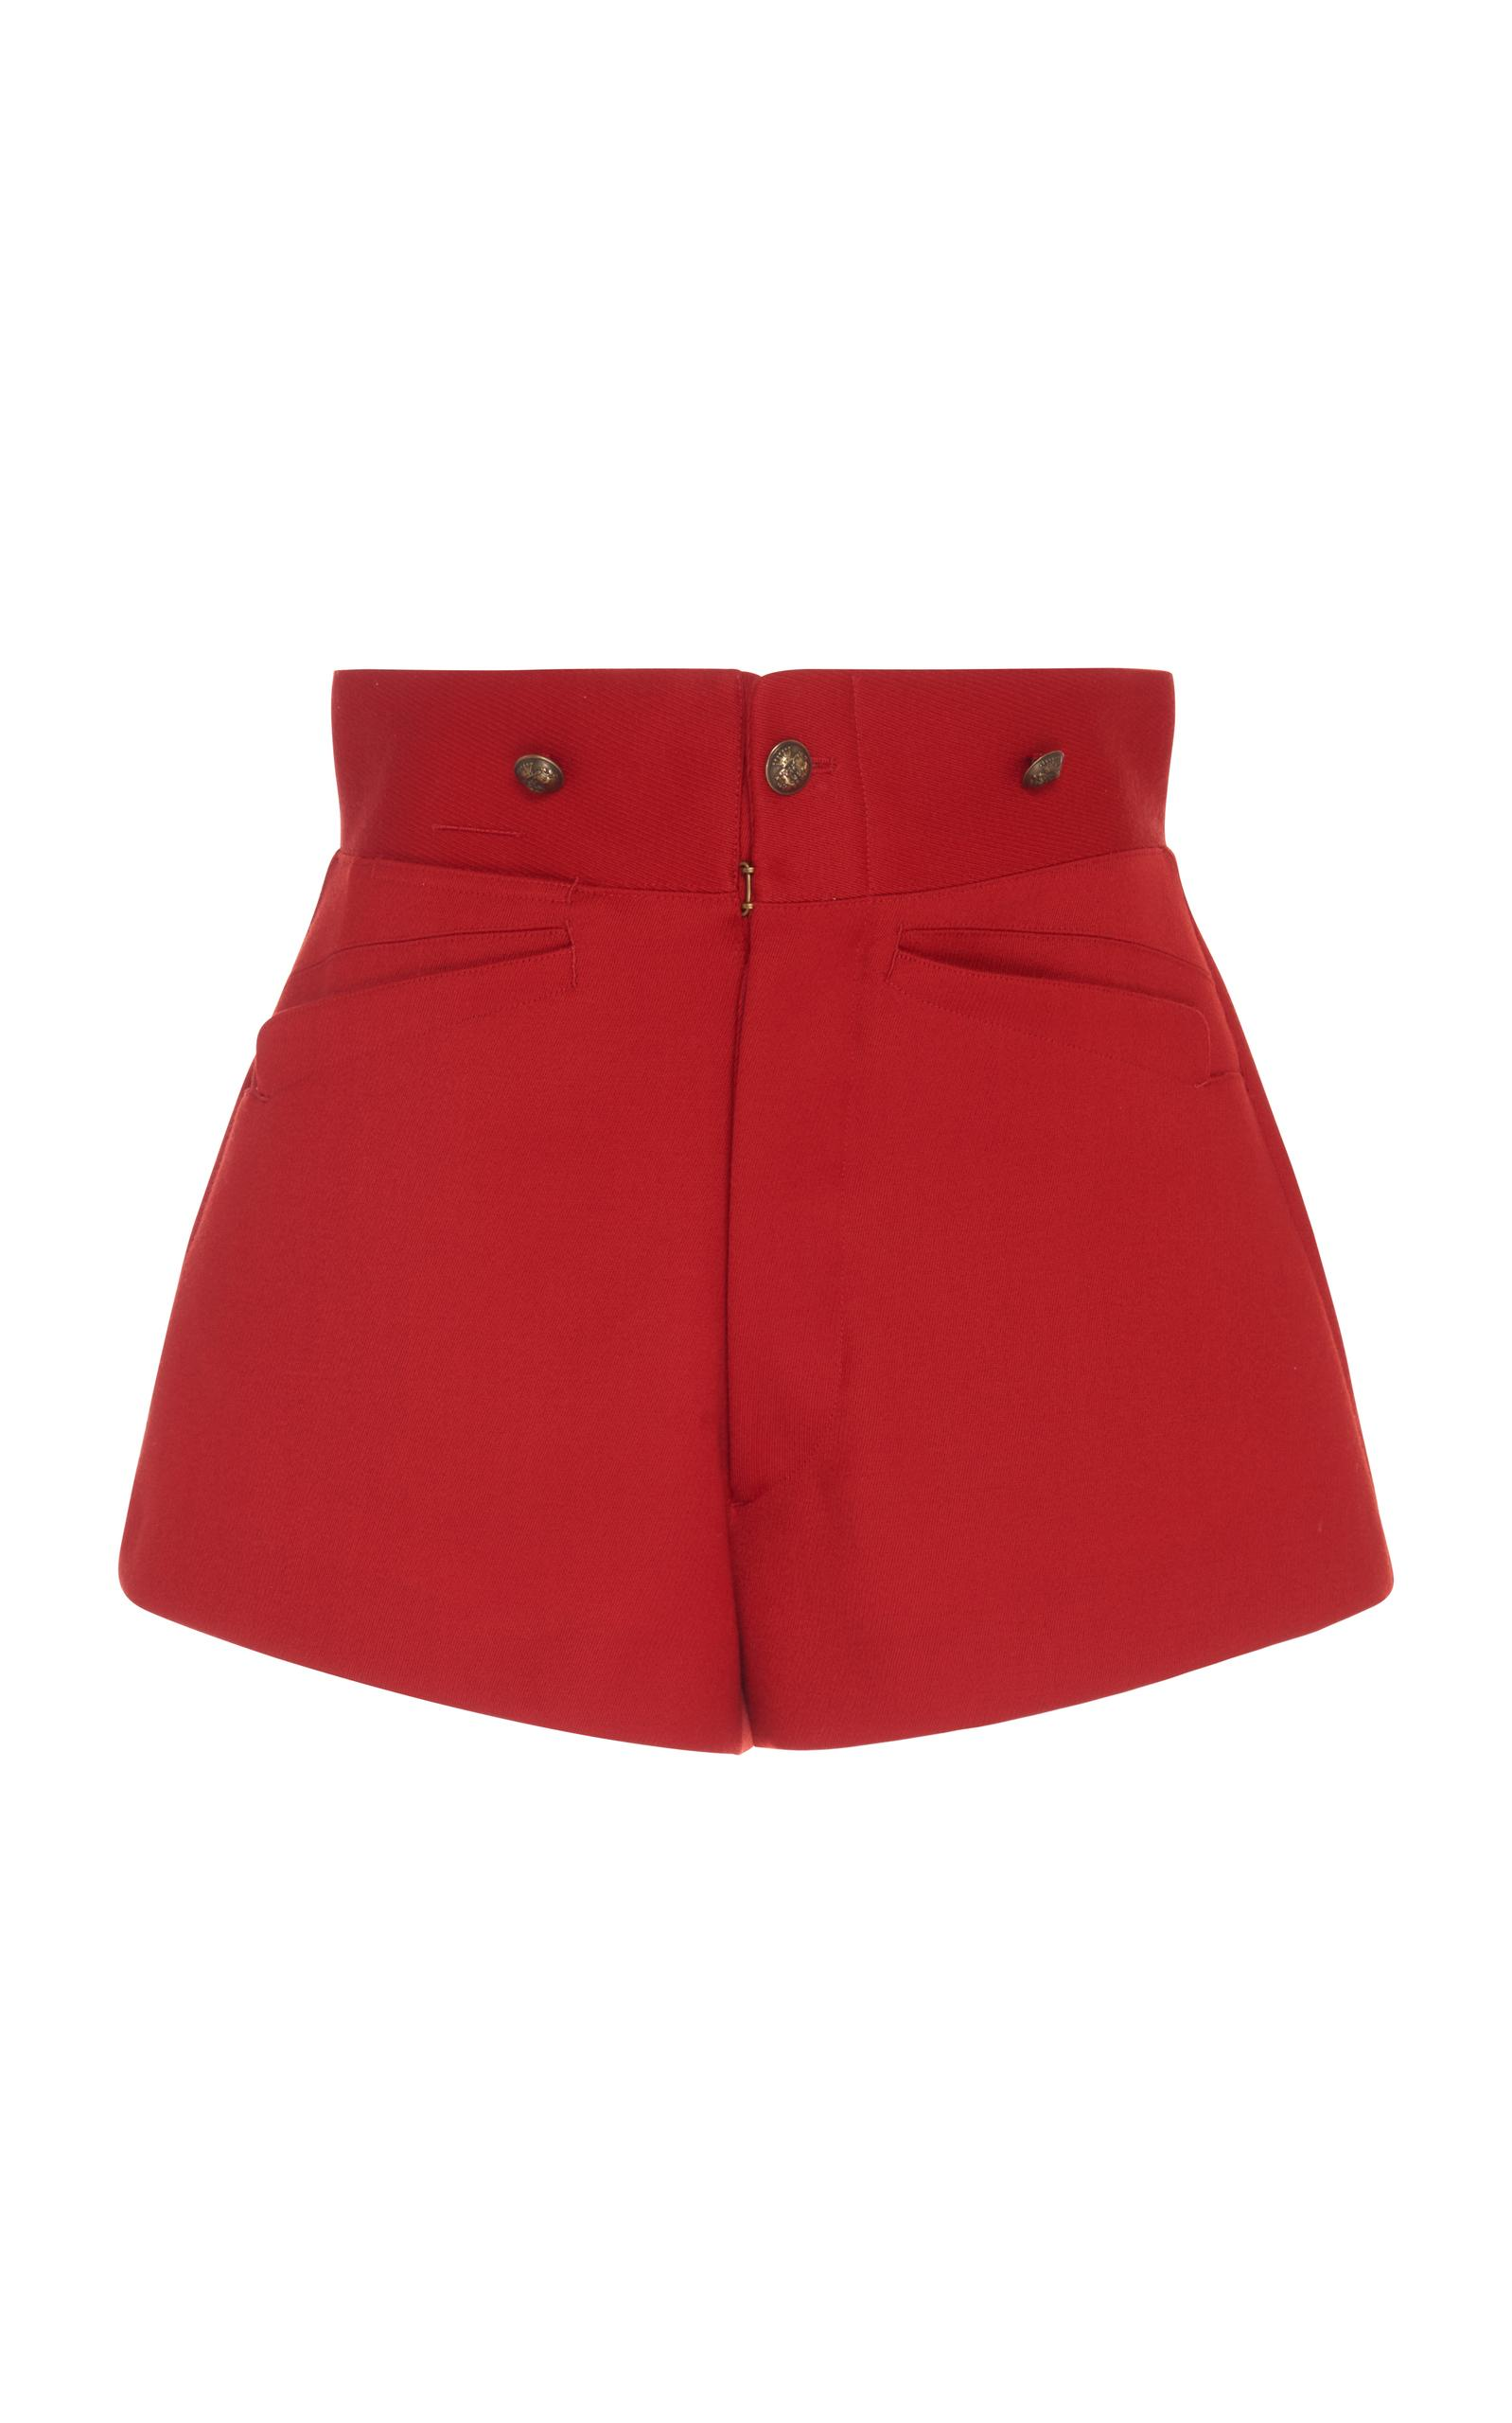 Maison Margiela High Waisted Riding Shorts In Red